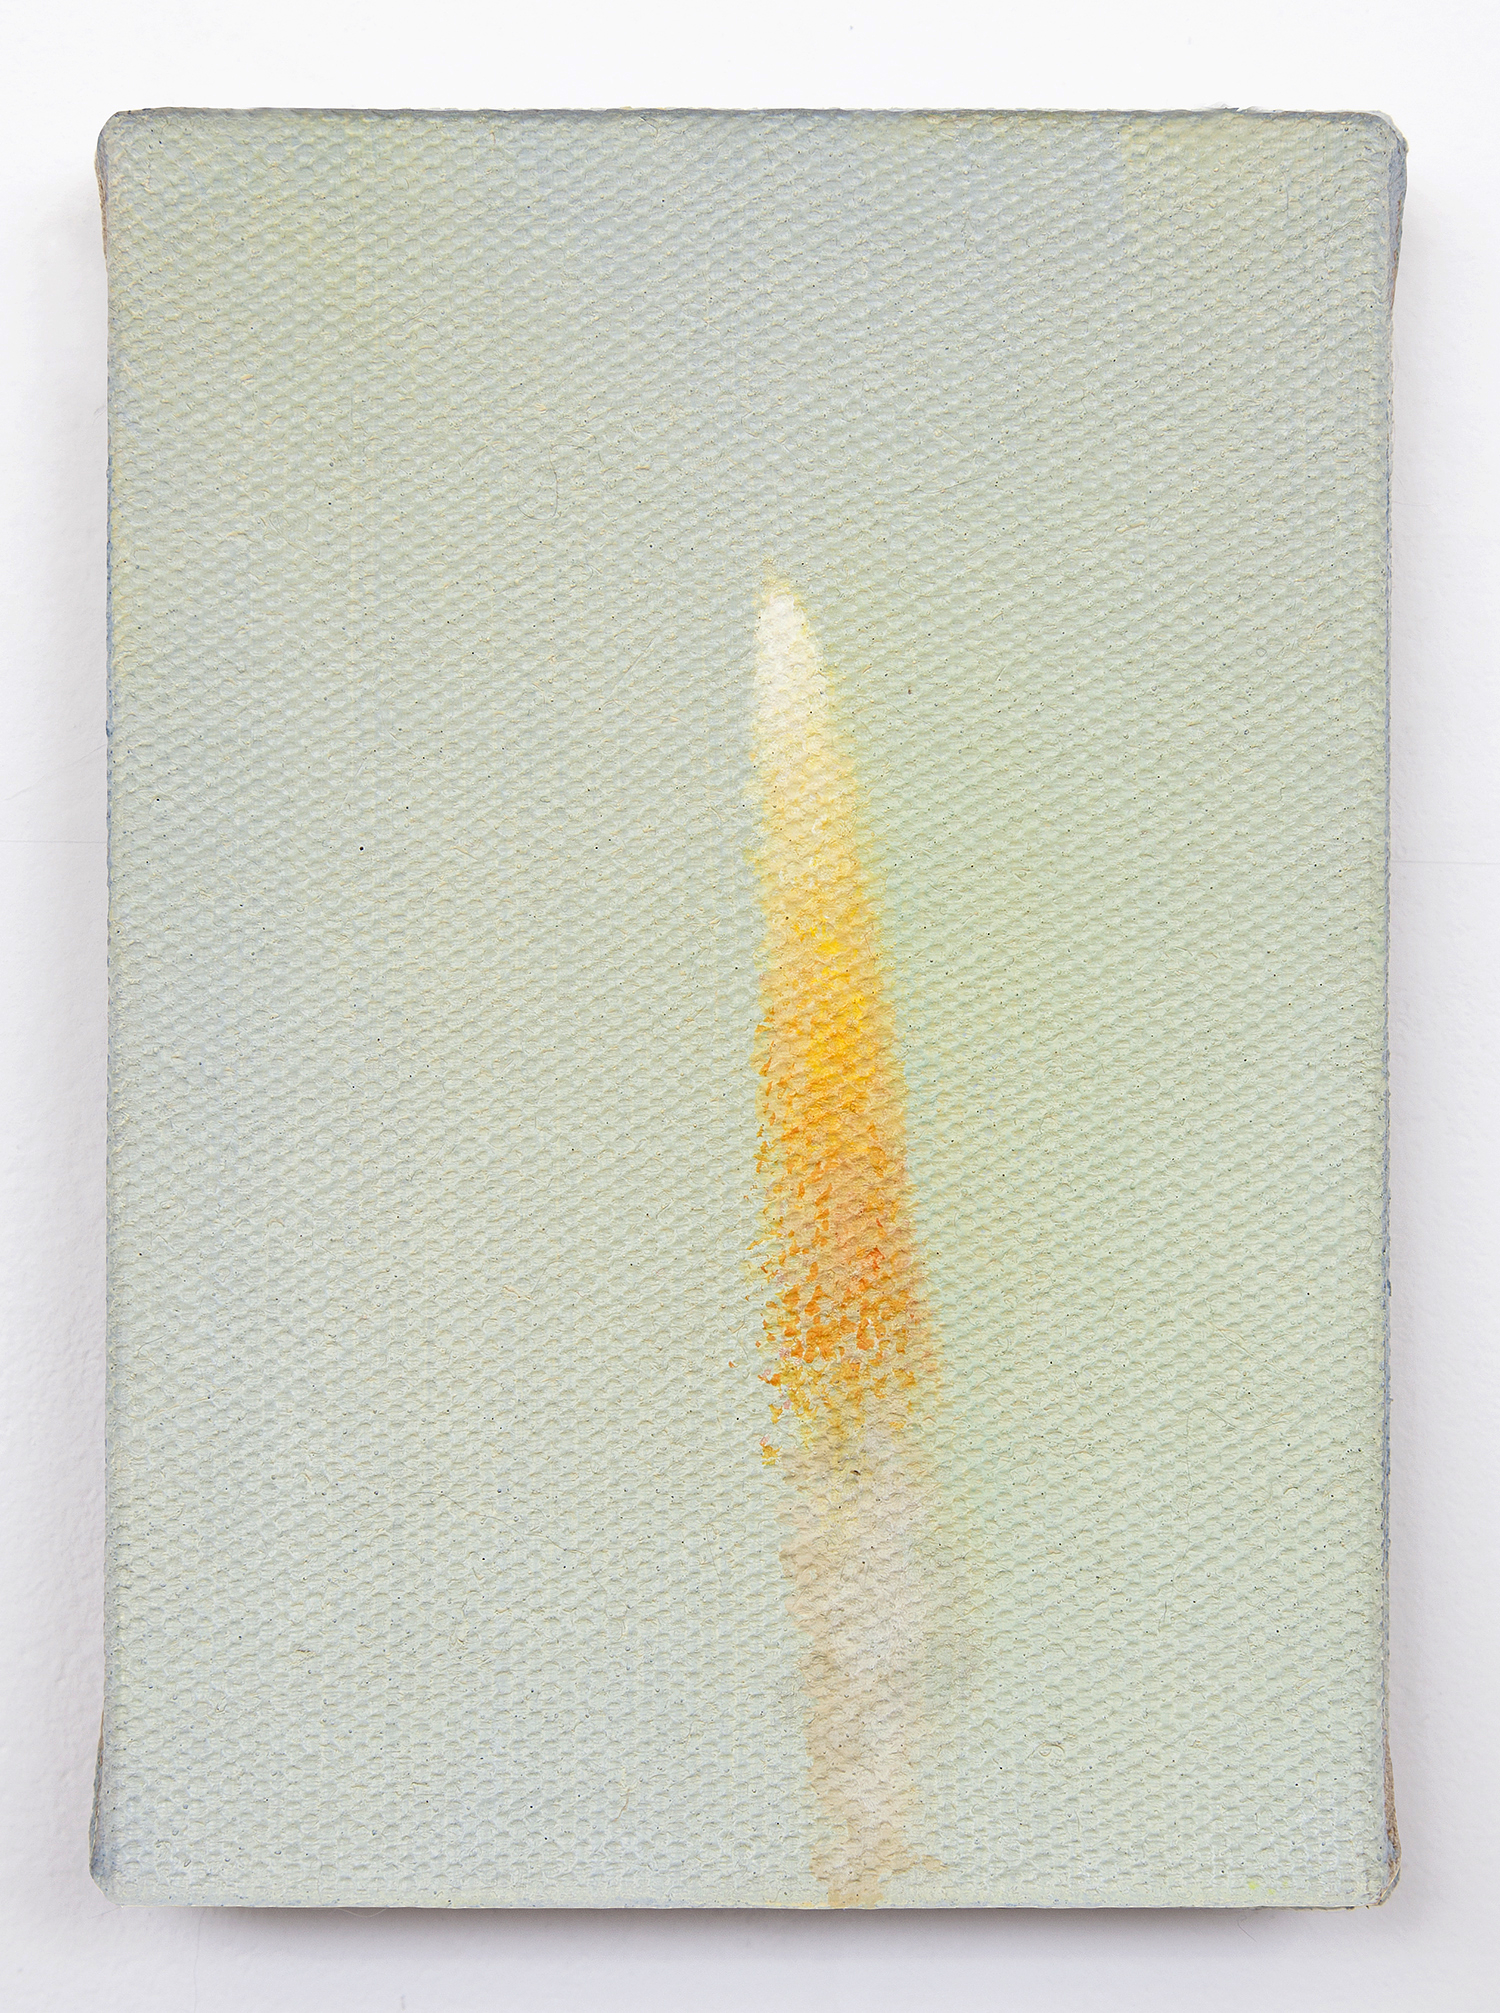 DP_Little_rocket_2018_7x5inches_oilonlinen.jpg